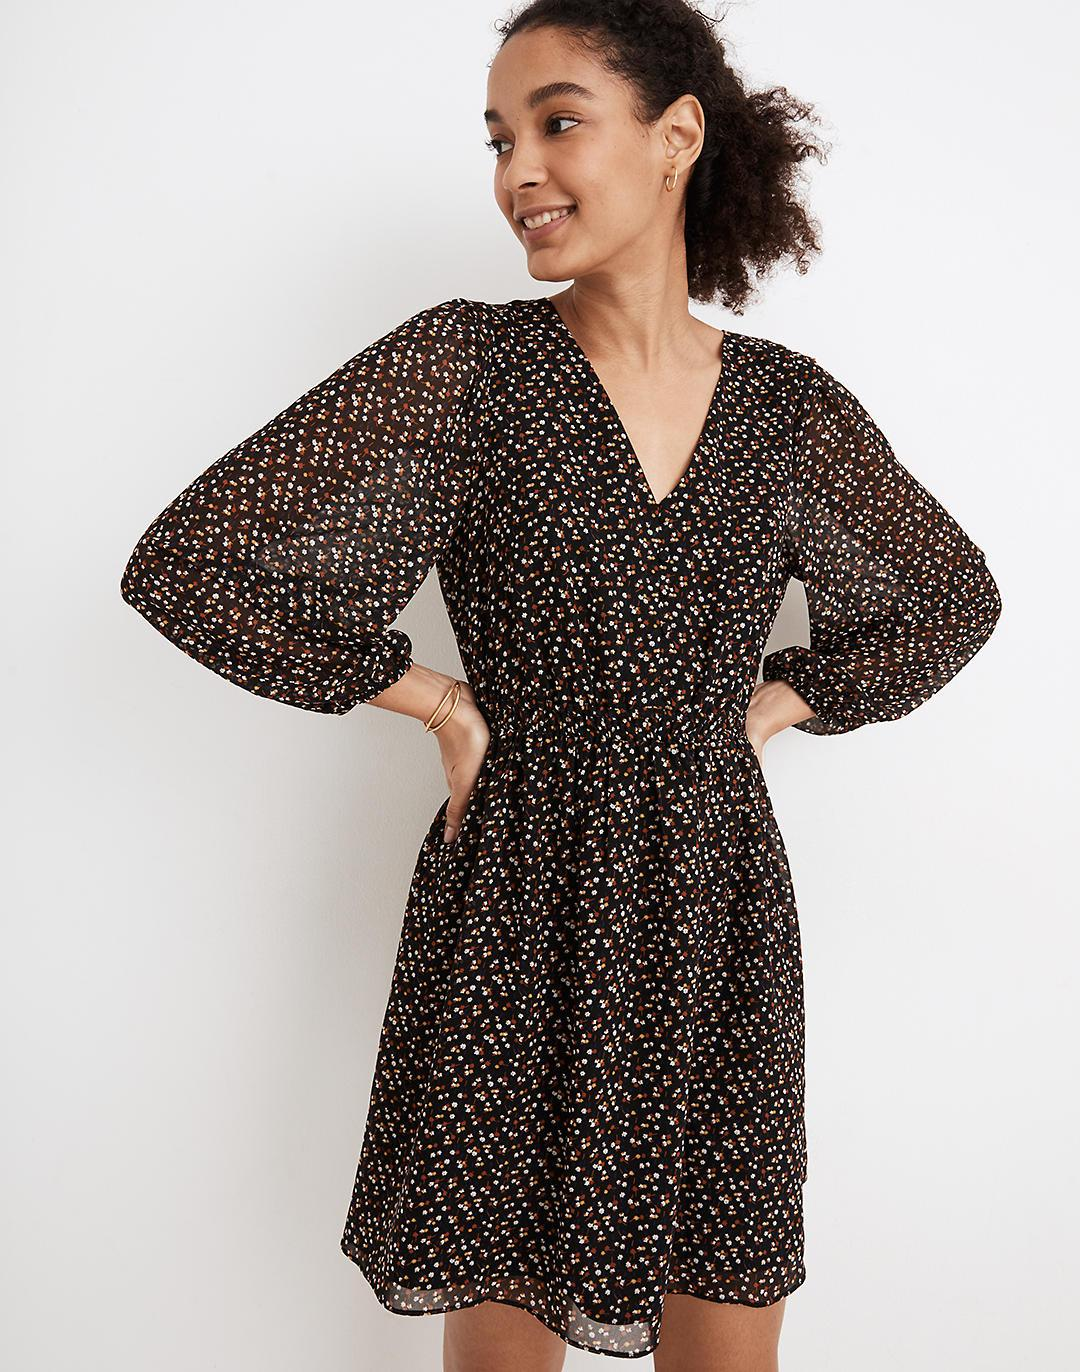 (Re)sourced Georgette Button-Front Mini Dress in Adorable Ditsy